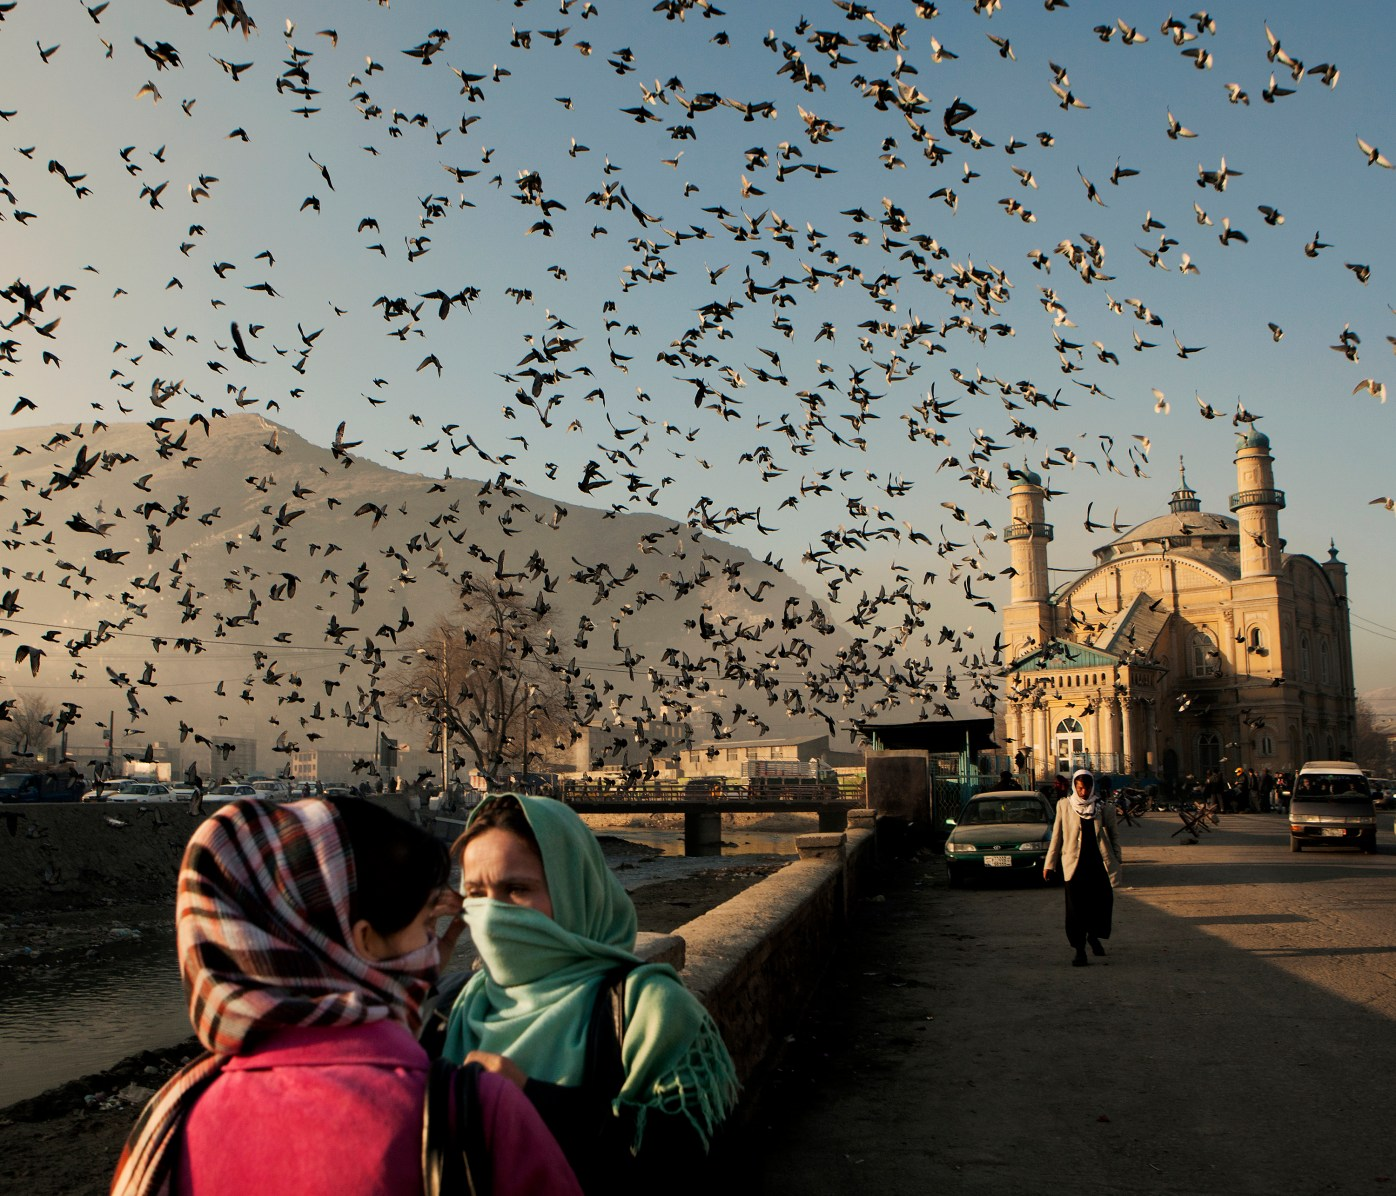 A huge flock of pigeons fly into the air behind two women standing by the Kabul River. In the background is the Shah Dashamshara Mosque. In June 2011, President Obama announced his plan to begin the withdrawal of US troops from Afghanistan, but there is currently no end date for the war in the troubled country. Helmand is the largest province in Afghanistan, and the heart of the war against terror. Commanders on the ground have described the situation as the most brutal conflict the British Army has been involved in since the Korean War. Much of the fighting between NATO and Taliban forces is taking place in this province and Helmand is a true Taliban stronghold. The Helmand River flows through the mainly desert region. With these images I am trying to show a softer side to this troubled area of Afghanistan.